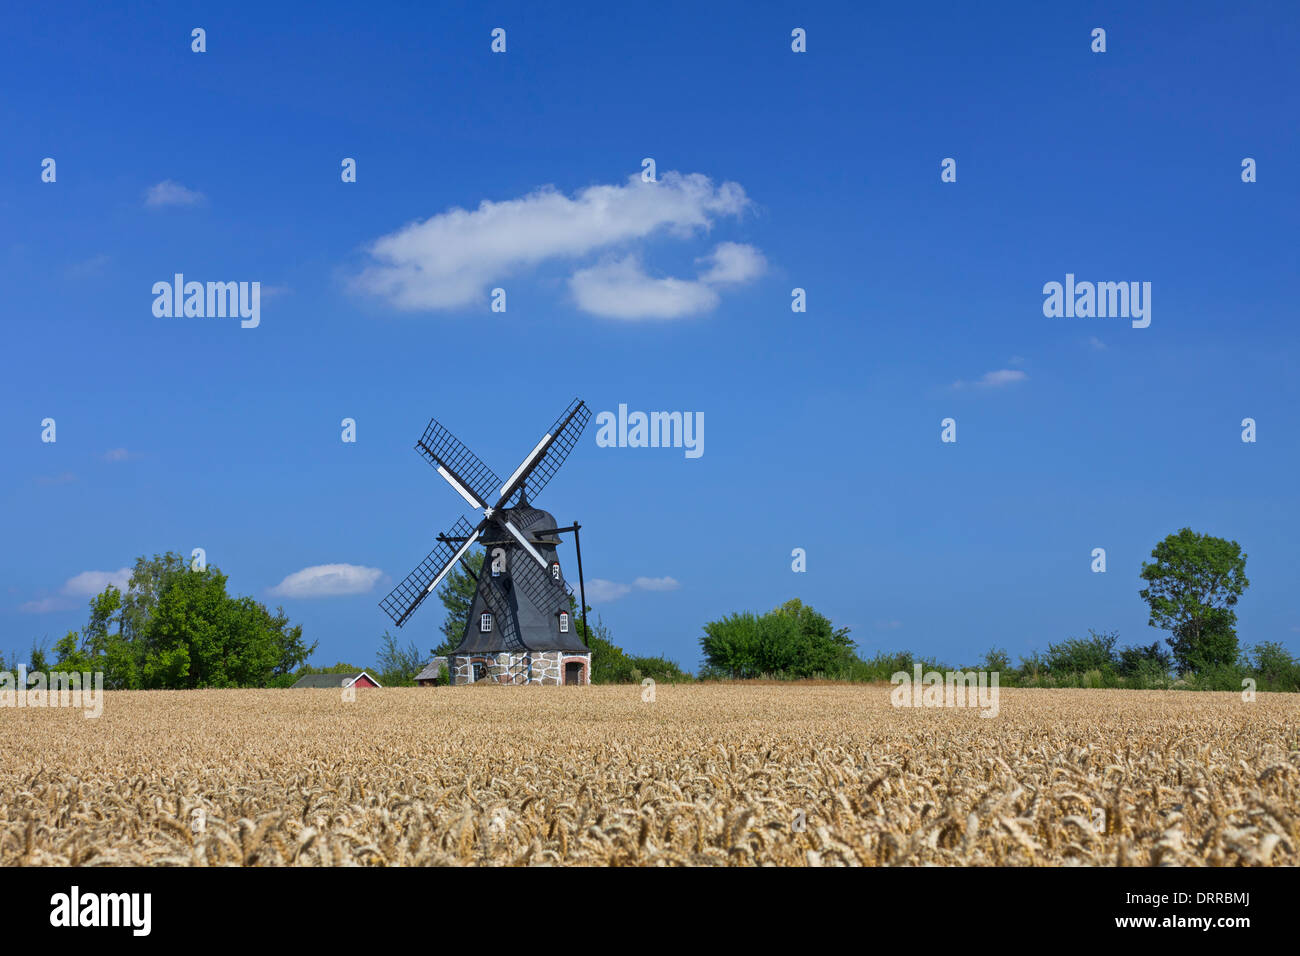 Traditional windmill in wheat field at Vanstad, Skåne / Scania, Sweden, Scandinavia - Stock Image